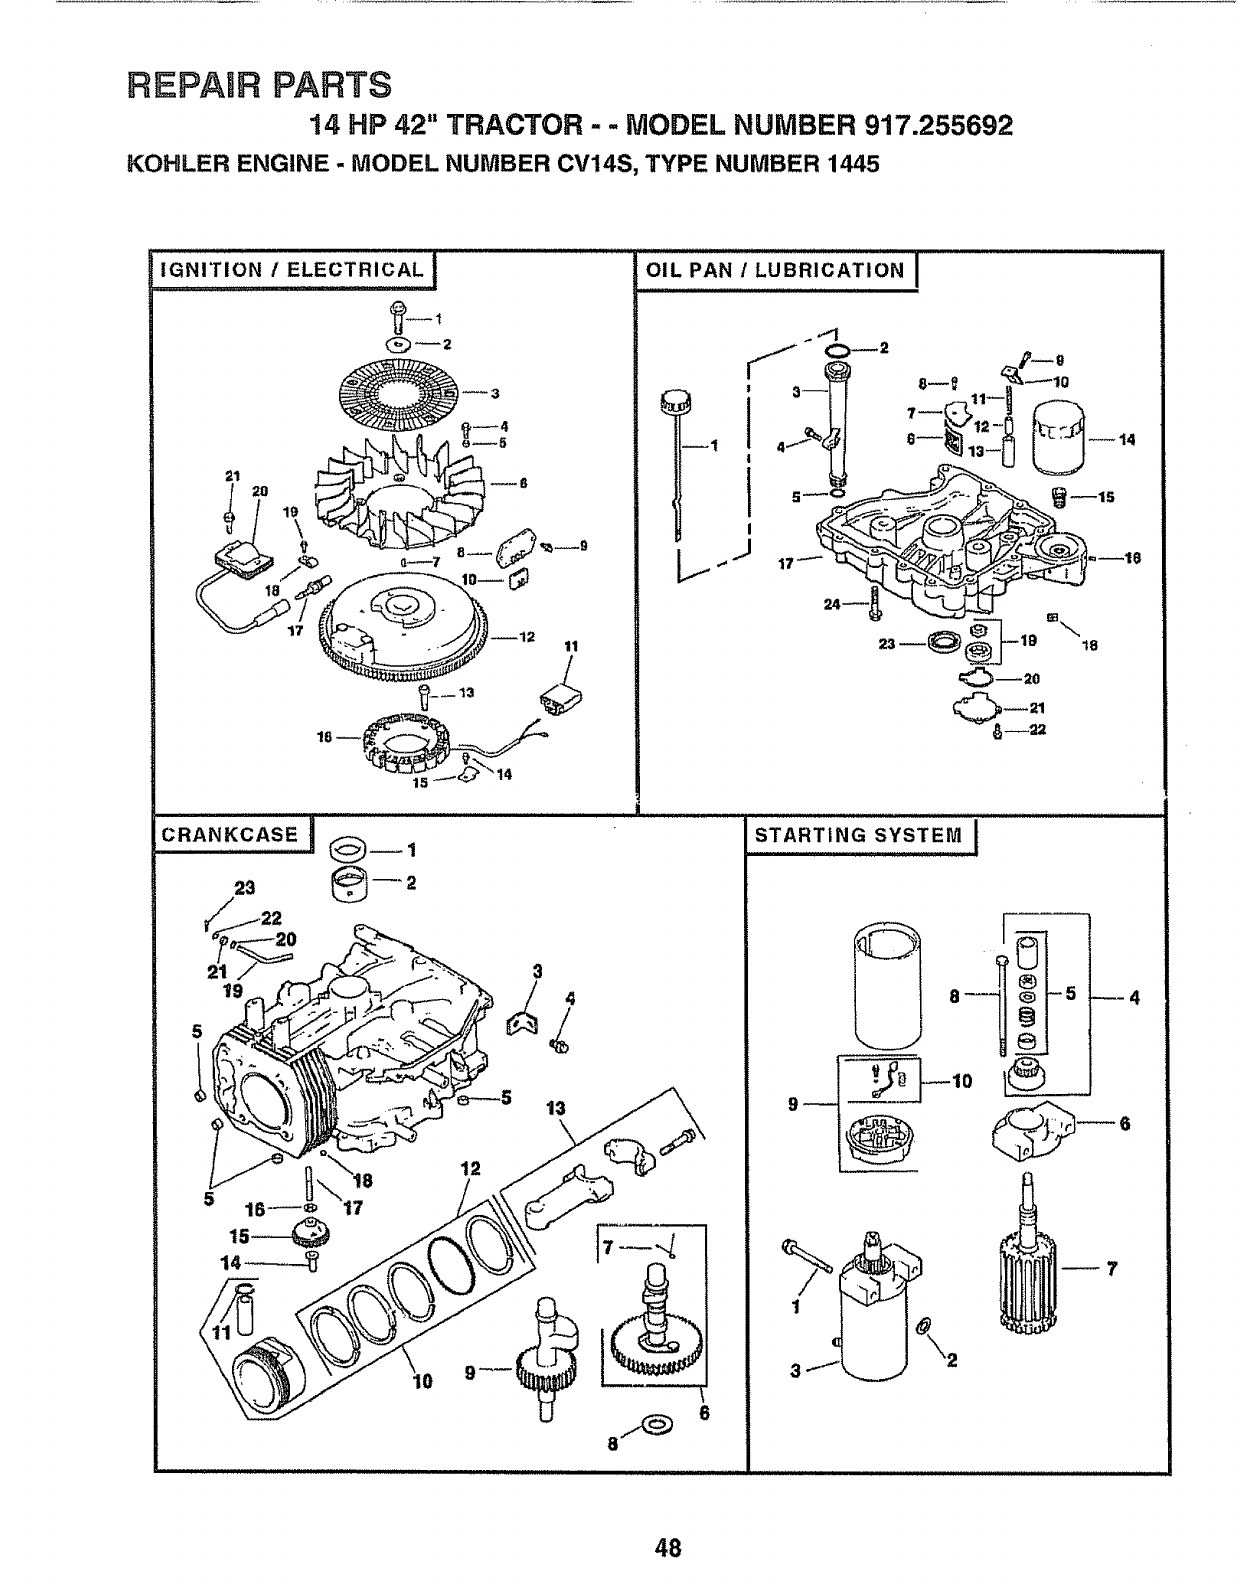 Craftsman 917255692 User Manual Lawn Tractor Manuals And Guides Sears 26 Horse Kohler Engine Electrical Diagram Repaurparts